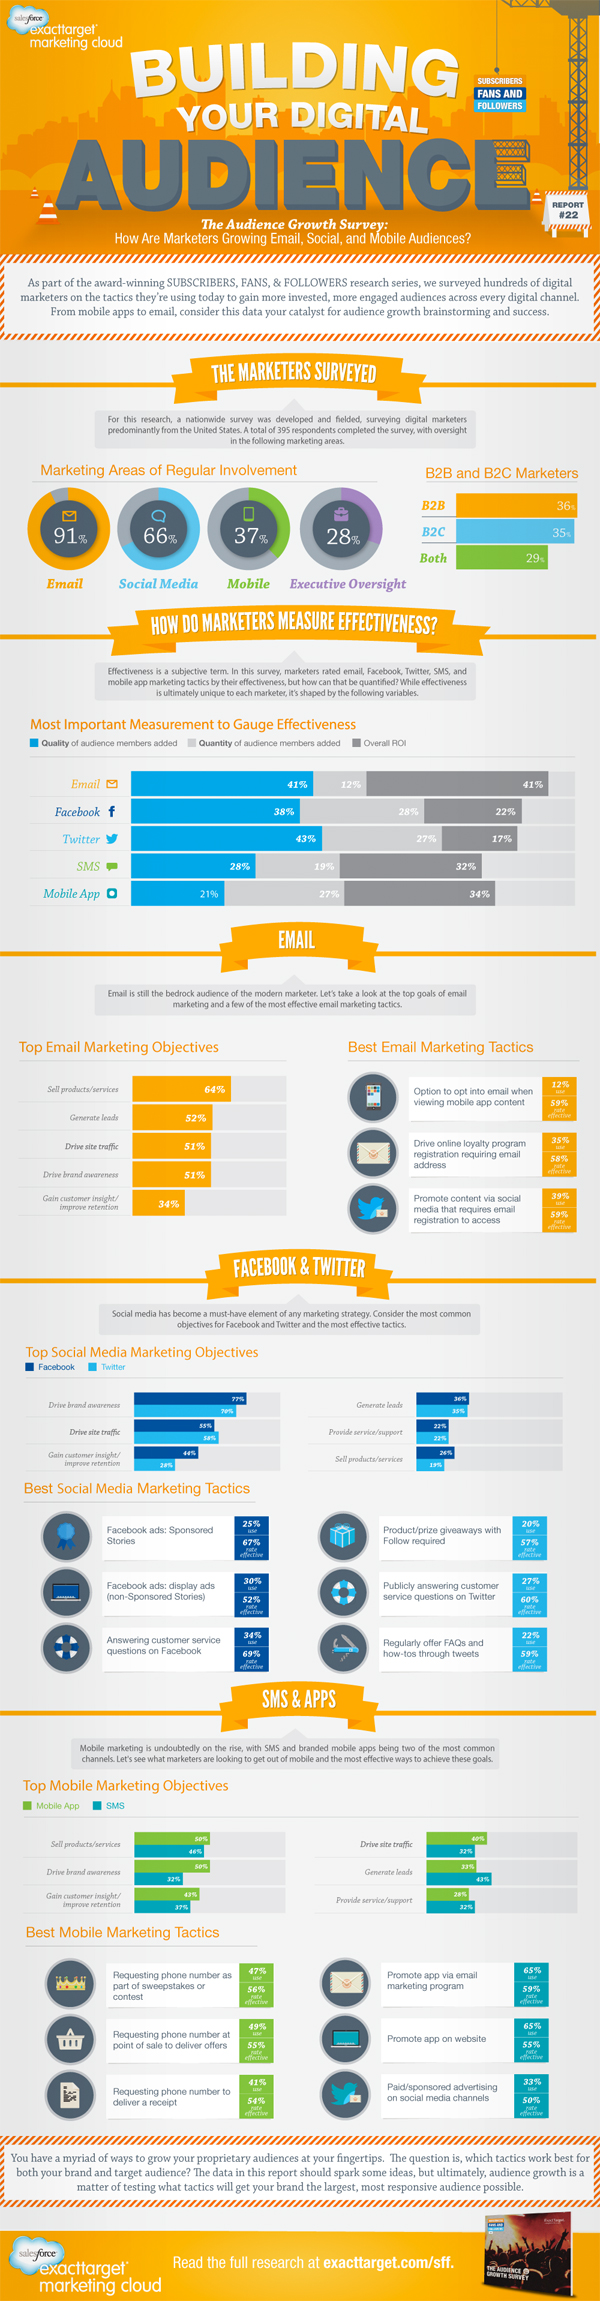 from http://www.exacttarget.com/blog/building-your-digital-audience-infographic/